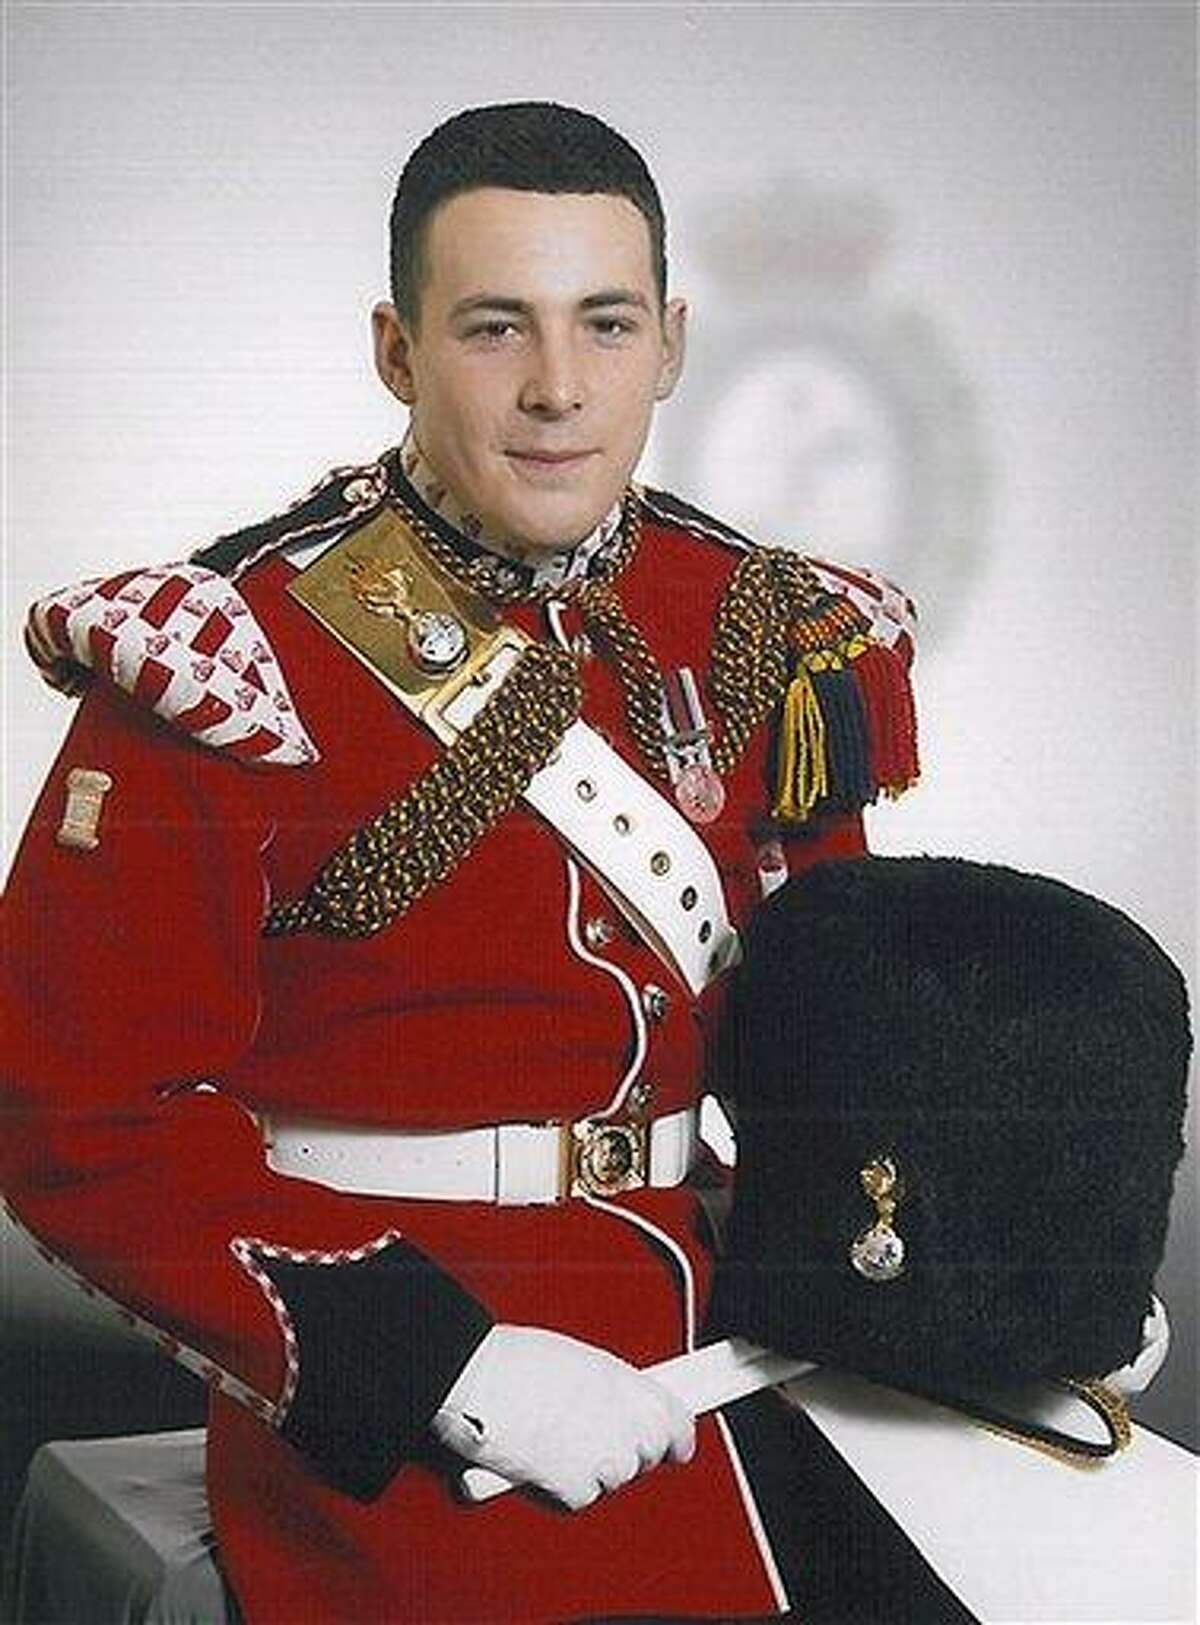 In this undated image released Thursday May 23, 2013, by the British Ministry of Defence, showing Lee Rigby known as 'Riggers' to his friends, who is identified by the MOD as the serving member of the armed forces who was attacked and killed by two men in the Woolwich area of London on Wednesday. The Ministry web site included the statement